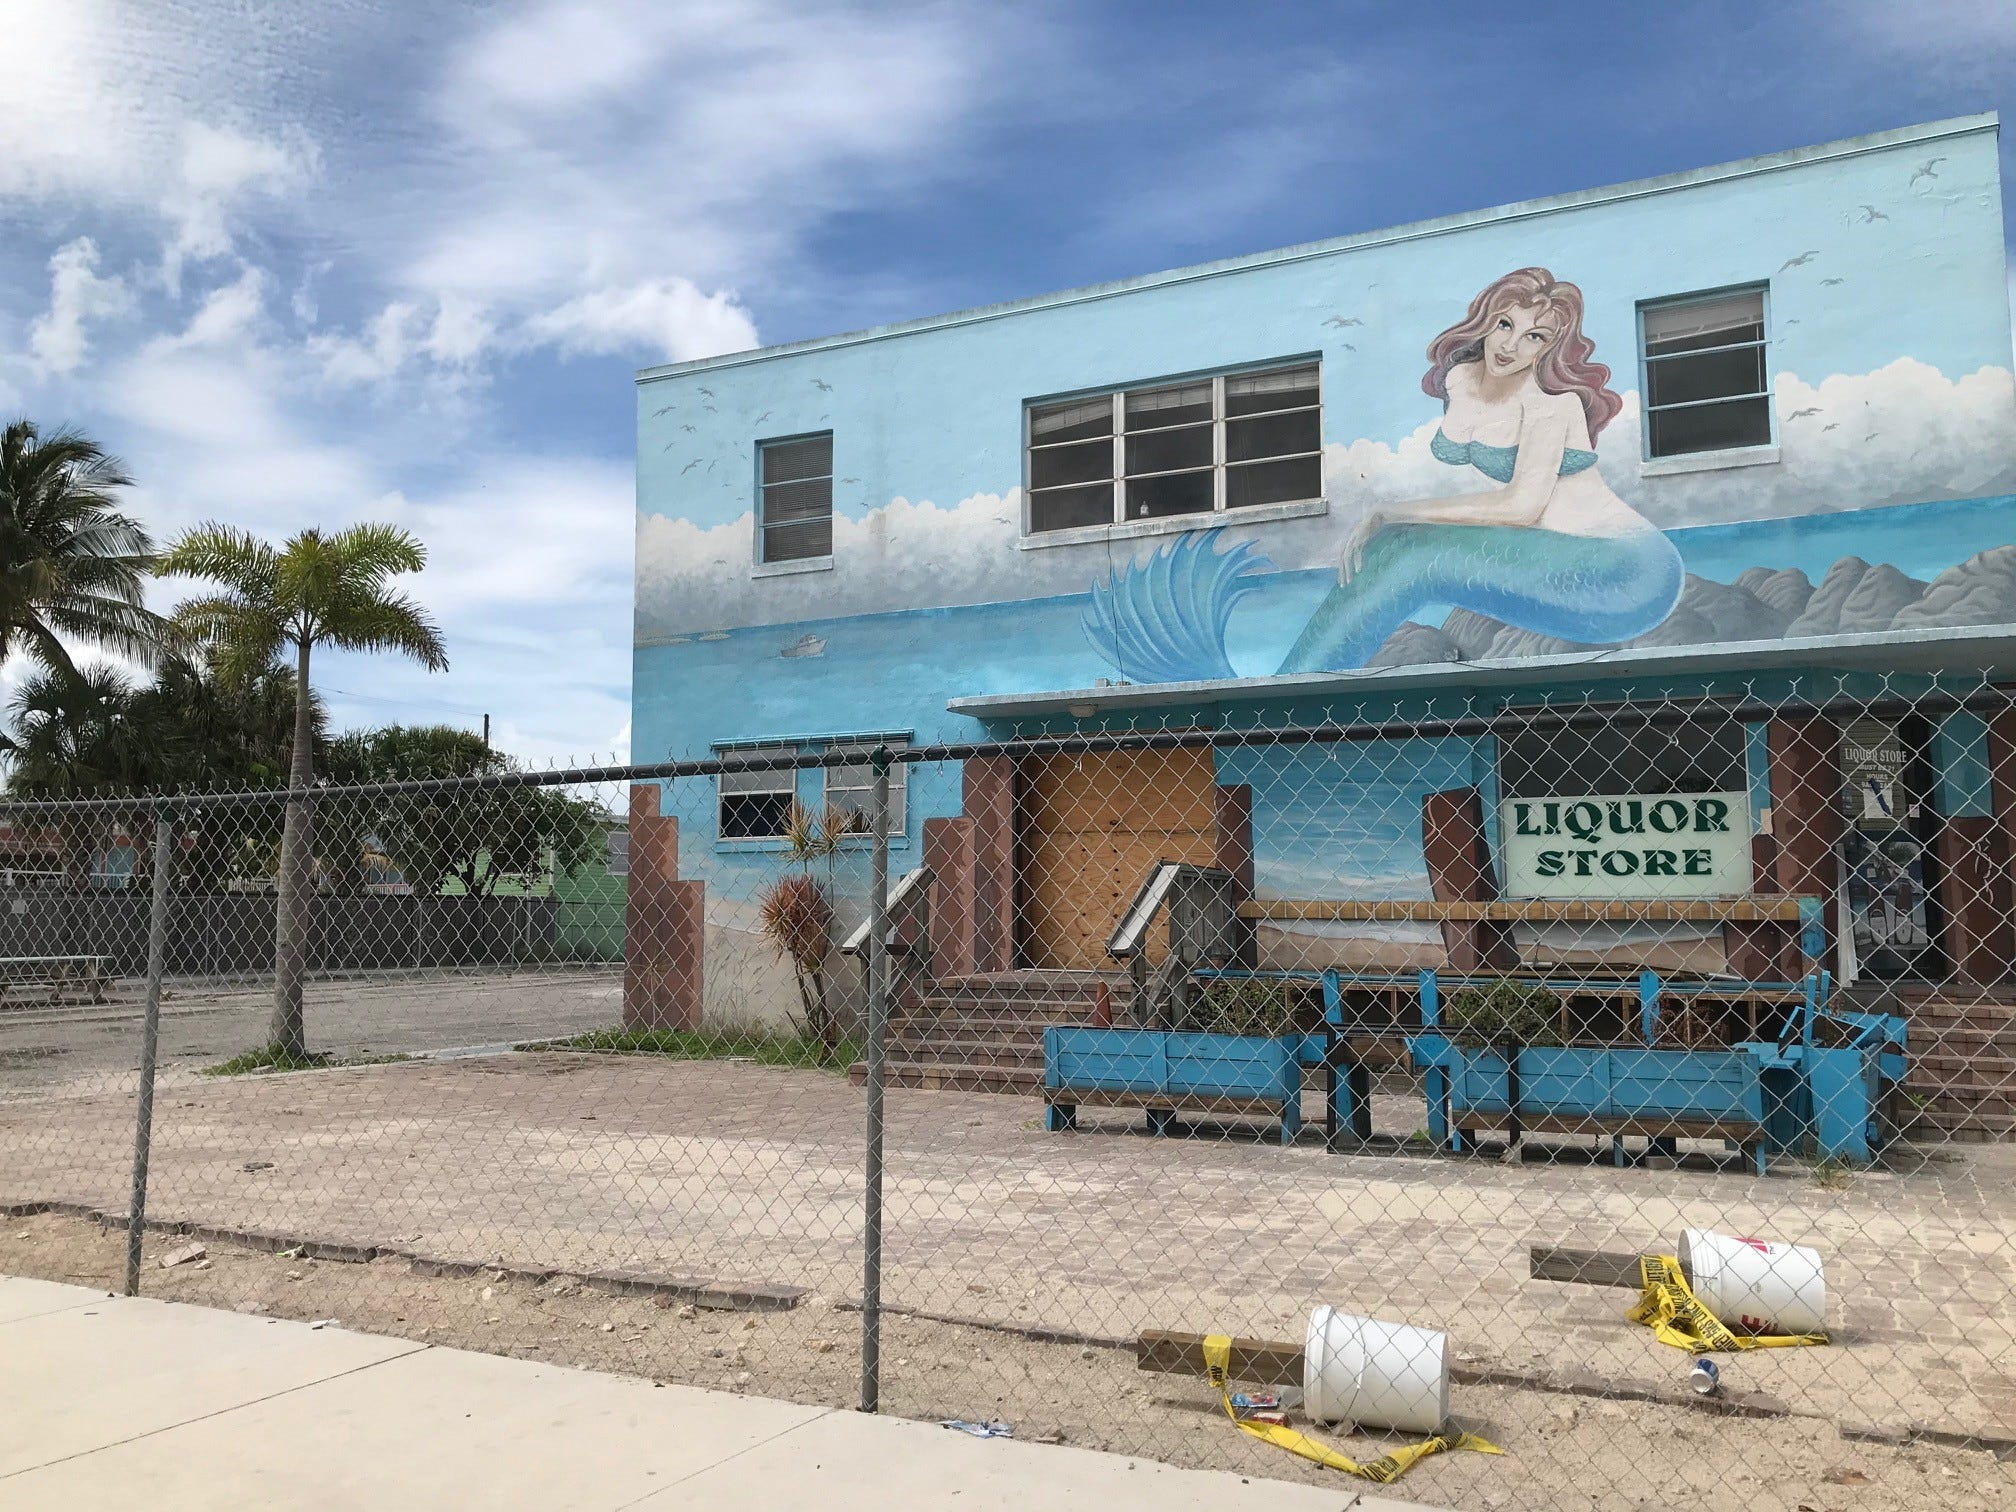 In the Know: Margaritaville construction and new and vintage Jimmy Buffett images